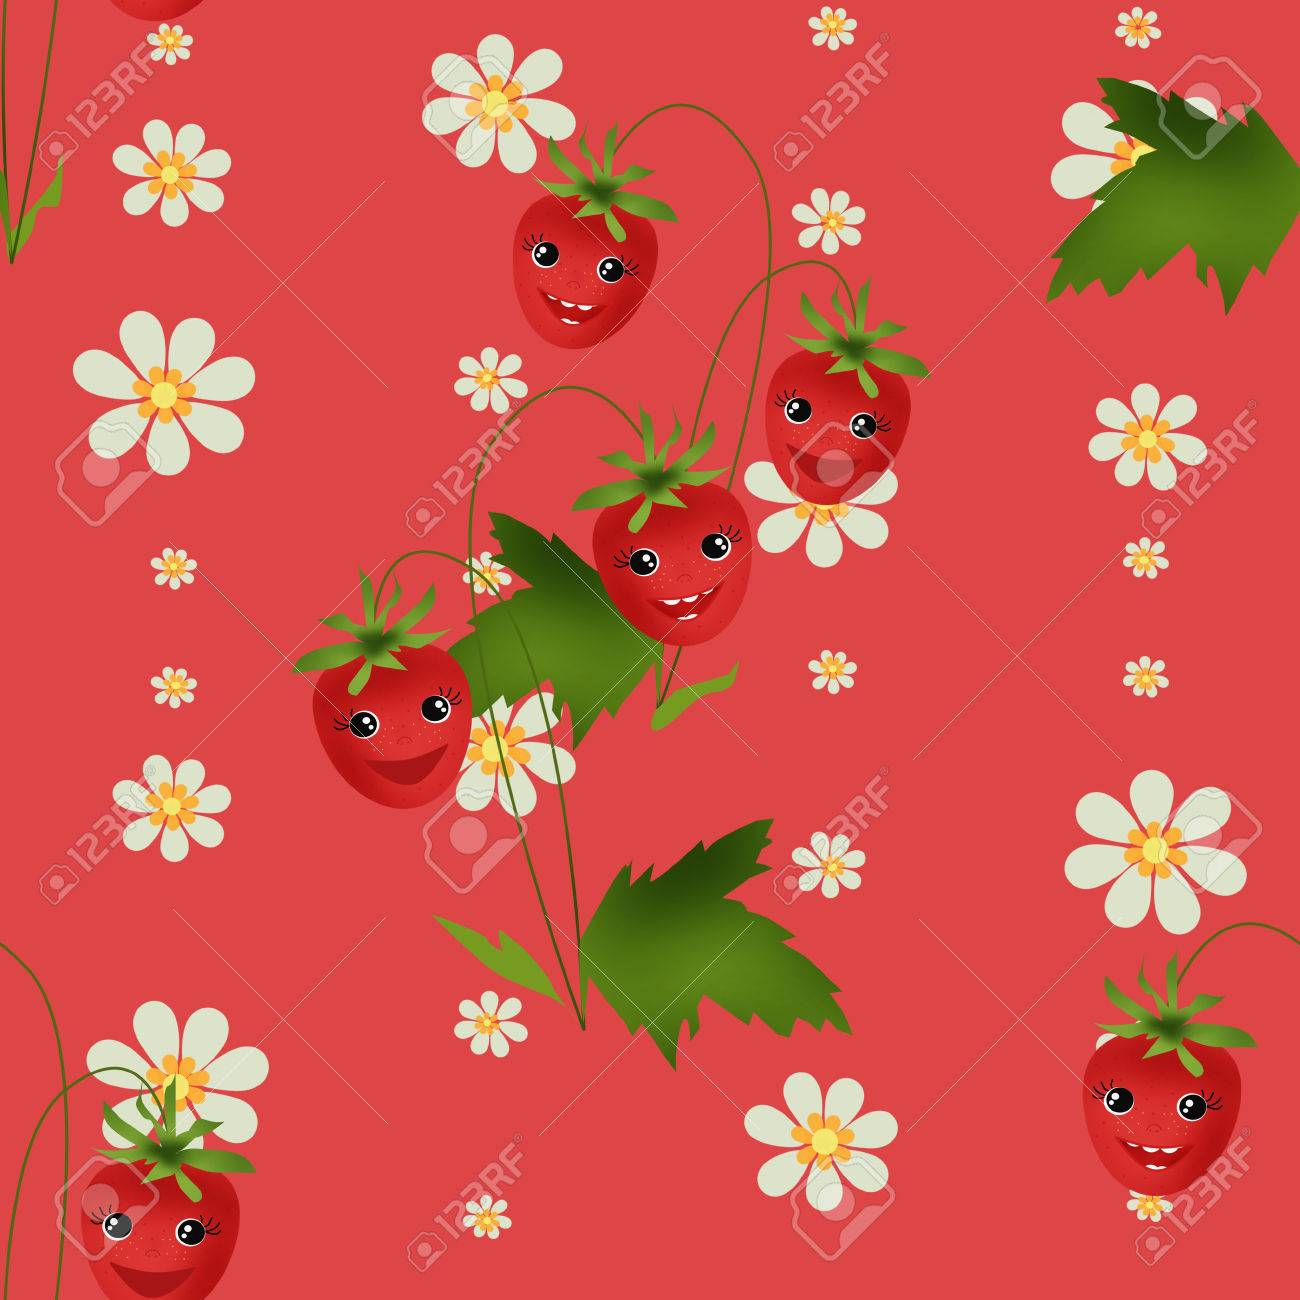 Seamless Kids Pattern With Strawberry Cartoon Characters On Red Stock Photo Picture And Royalty Free Image Image 52643462